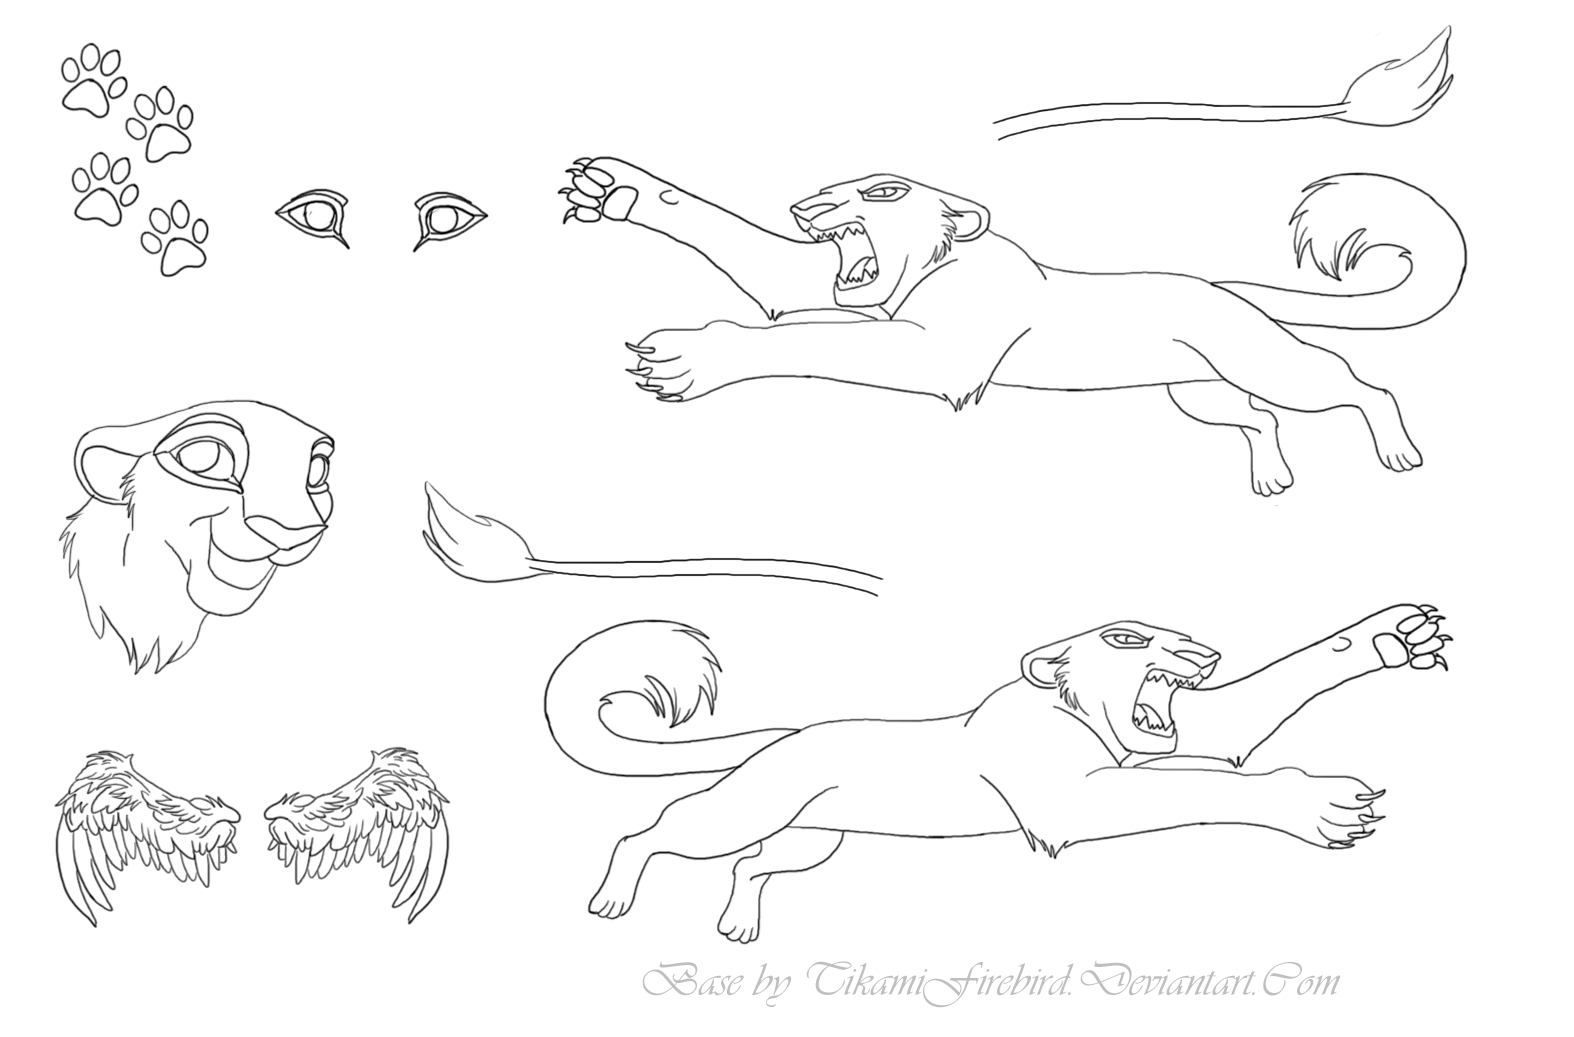 Lion_Tiger_Big_Cat_Ref_Sheet_by_tikamifirebird.png